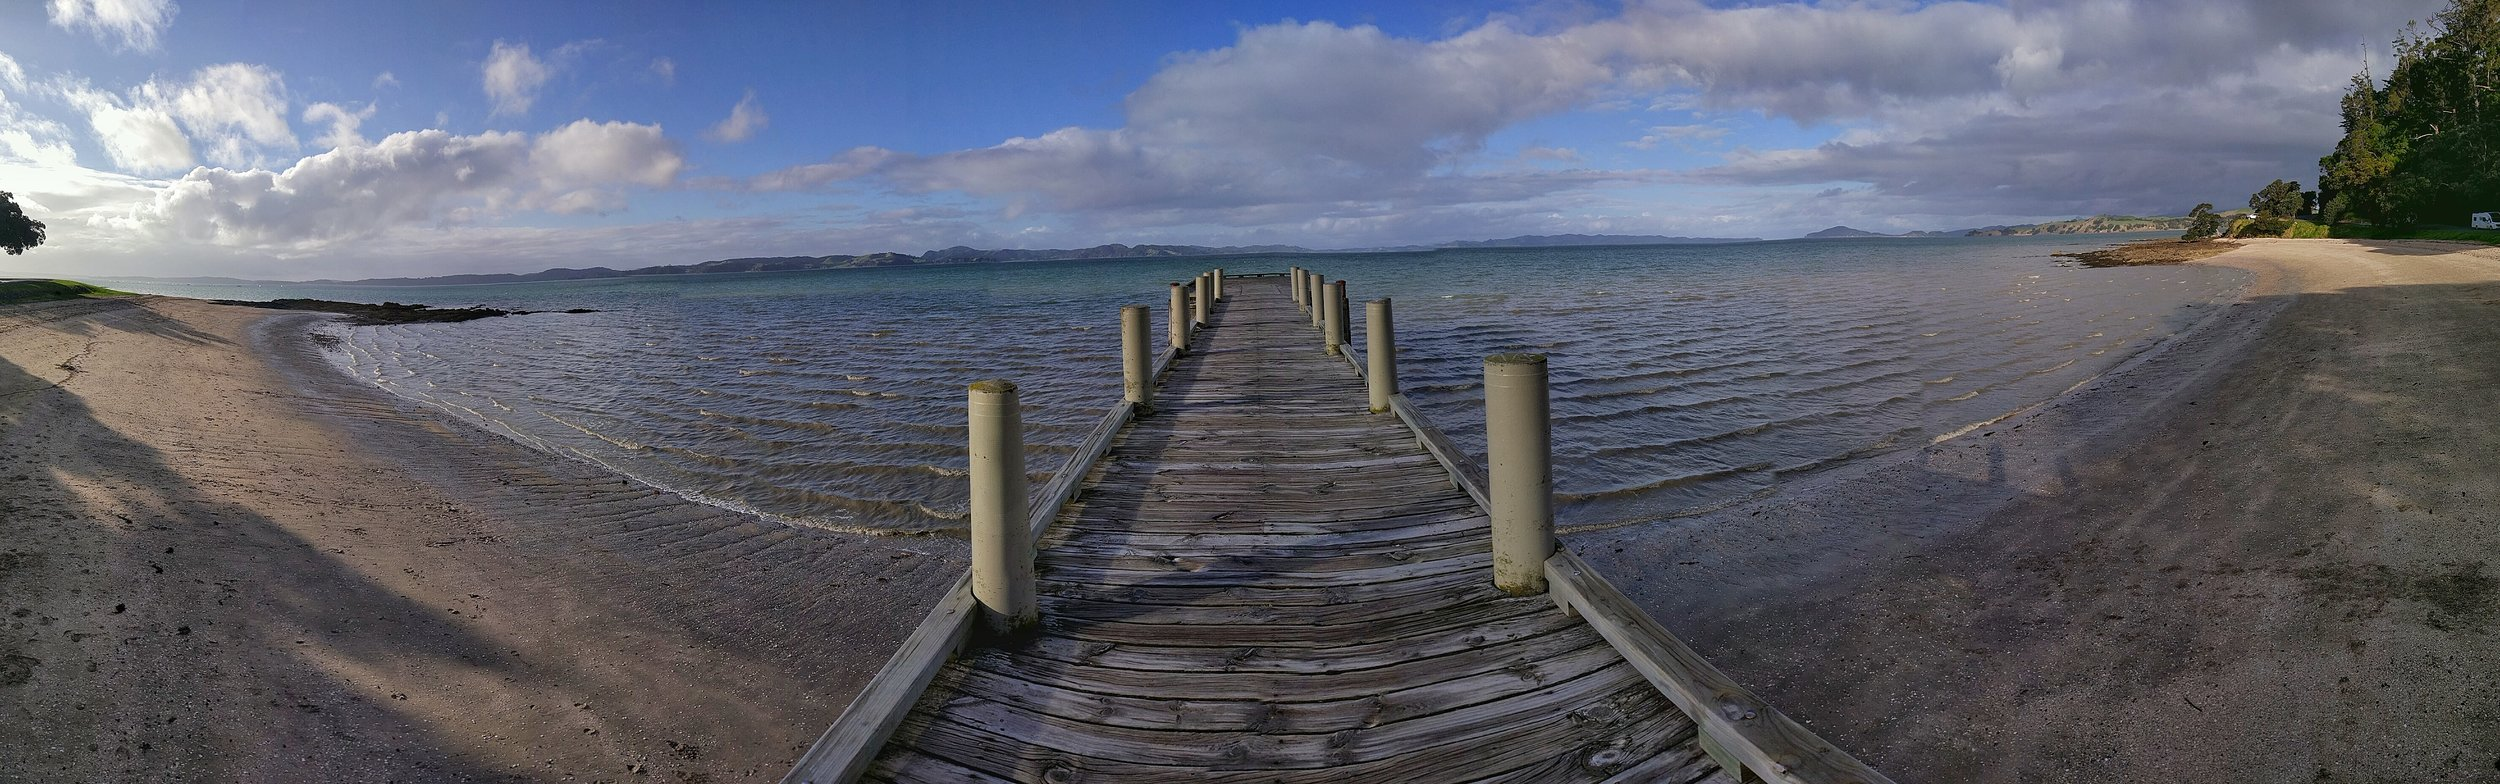 20170826_new zealand_Maraetai_Beach_Pano.jpeg